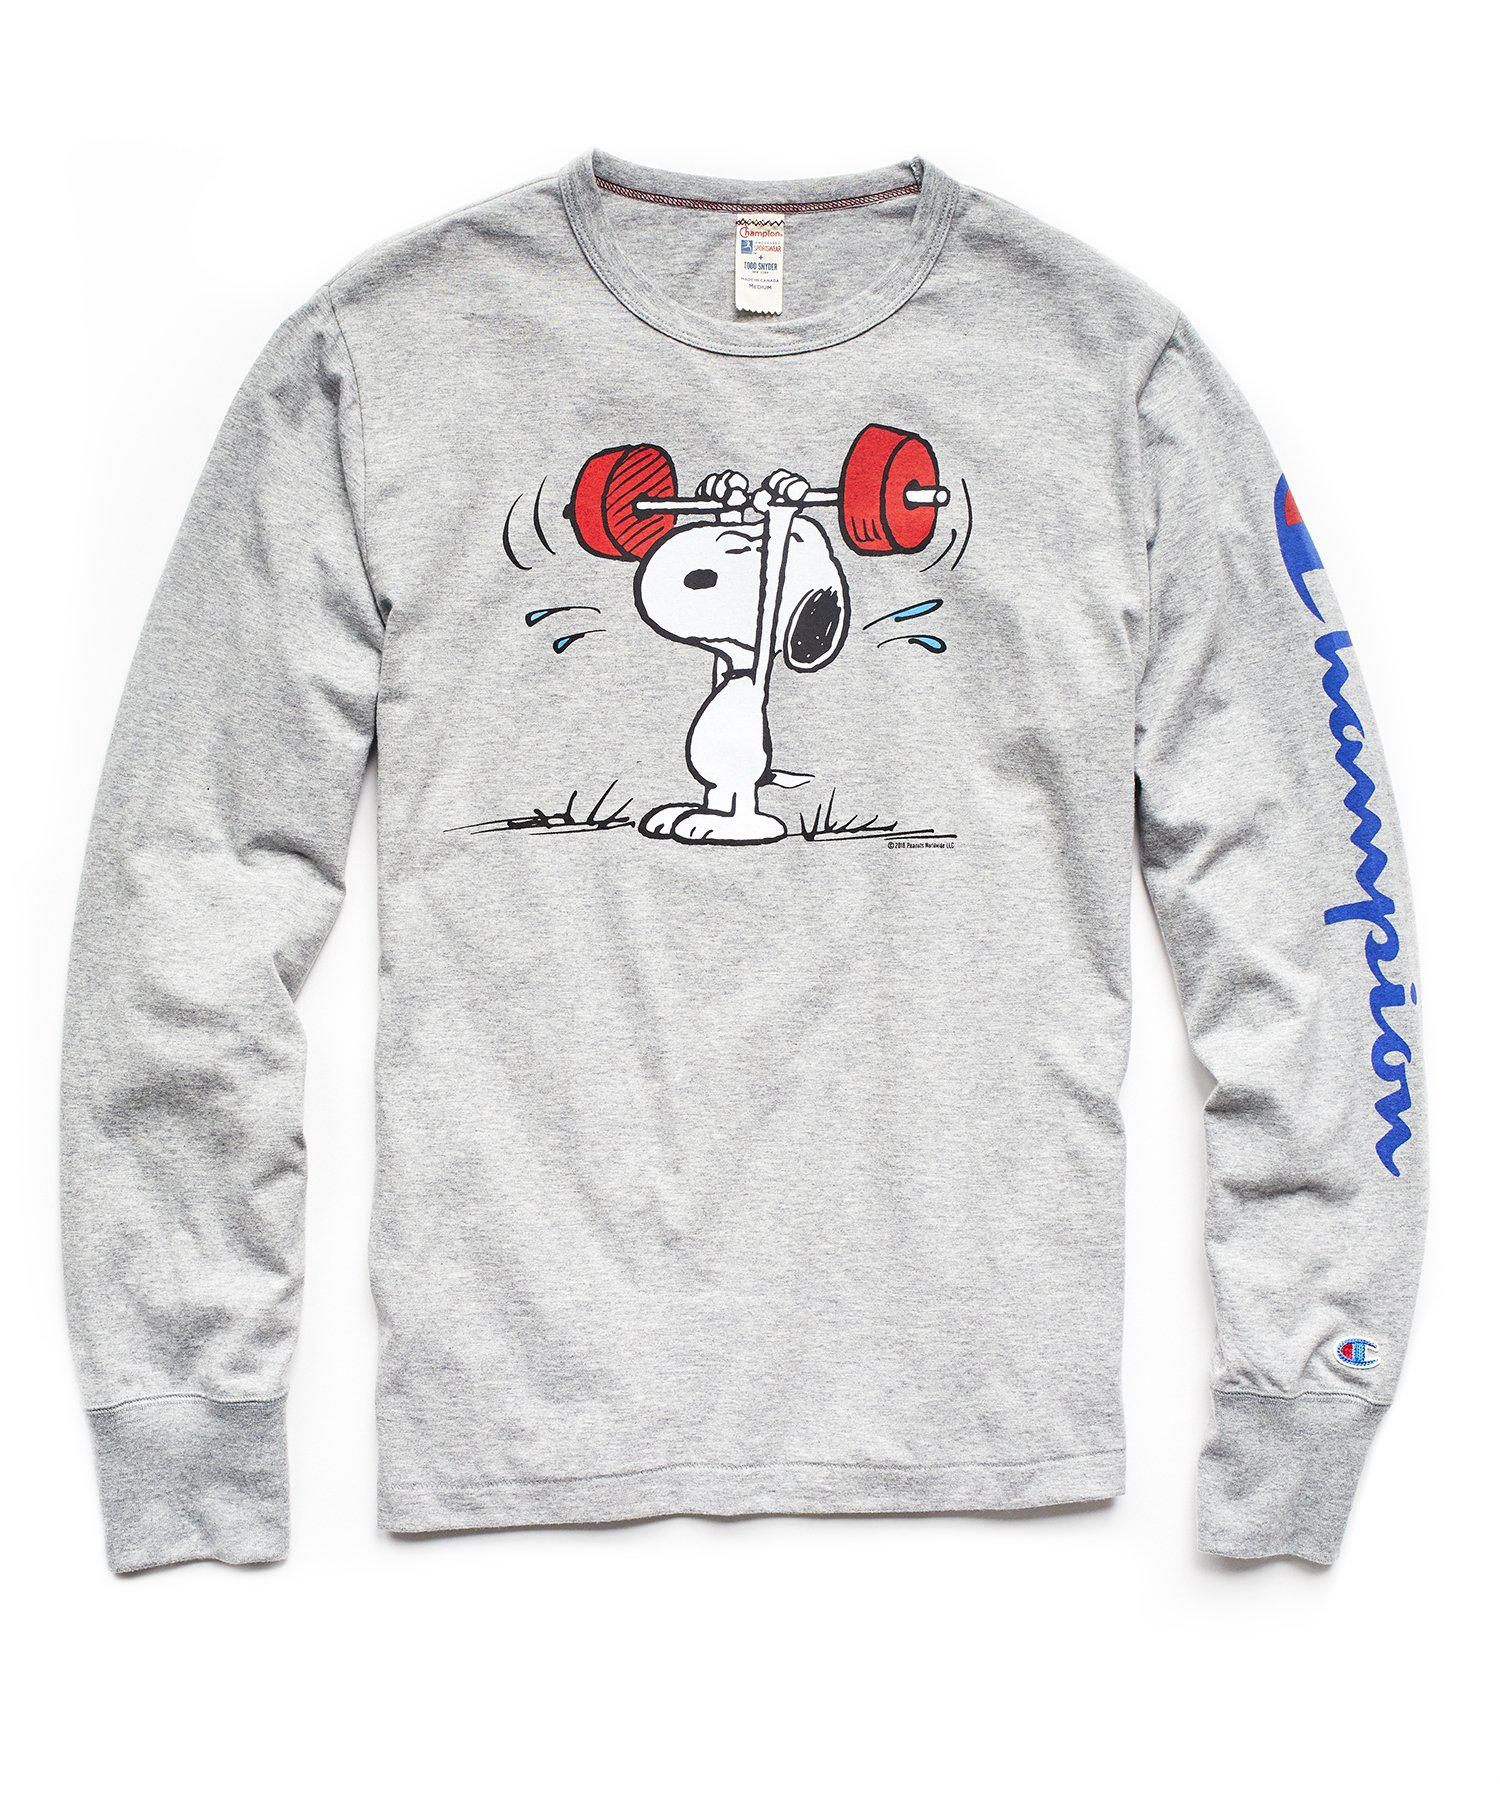 4a7207f6 Todd Snyder Champion X Peanuts Long Sleeve Snoopy Weightlifting T ...